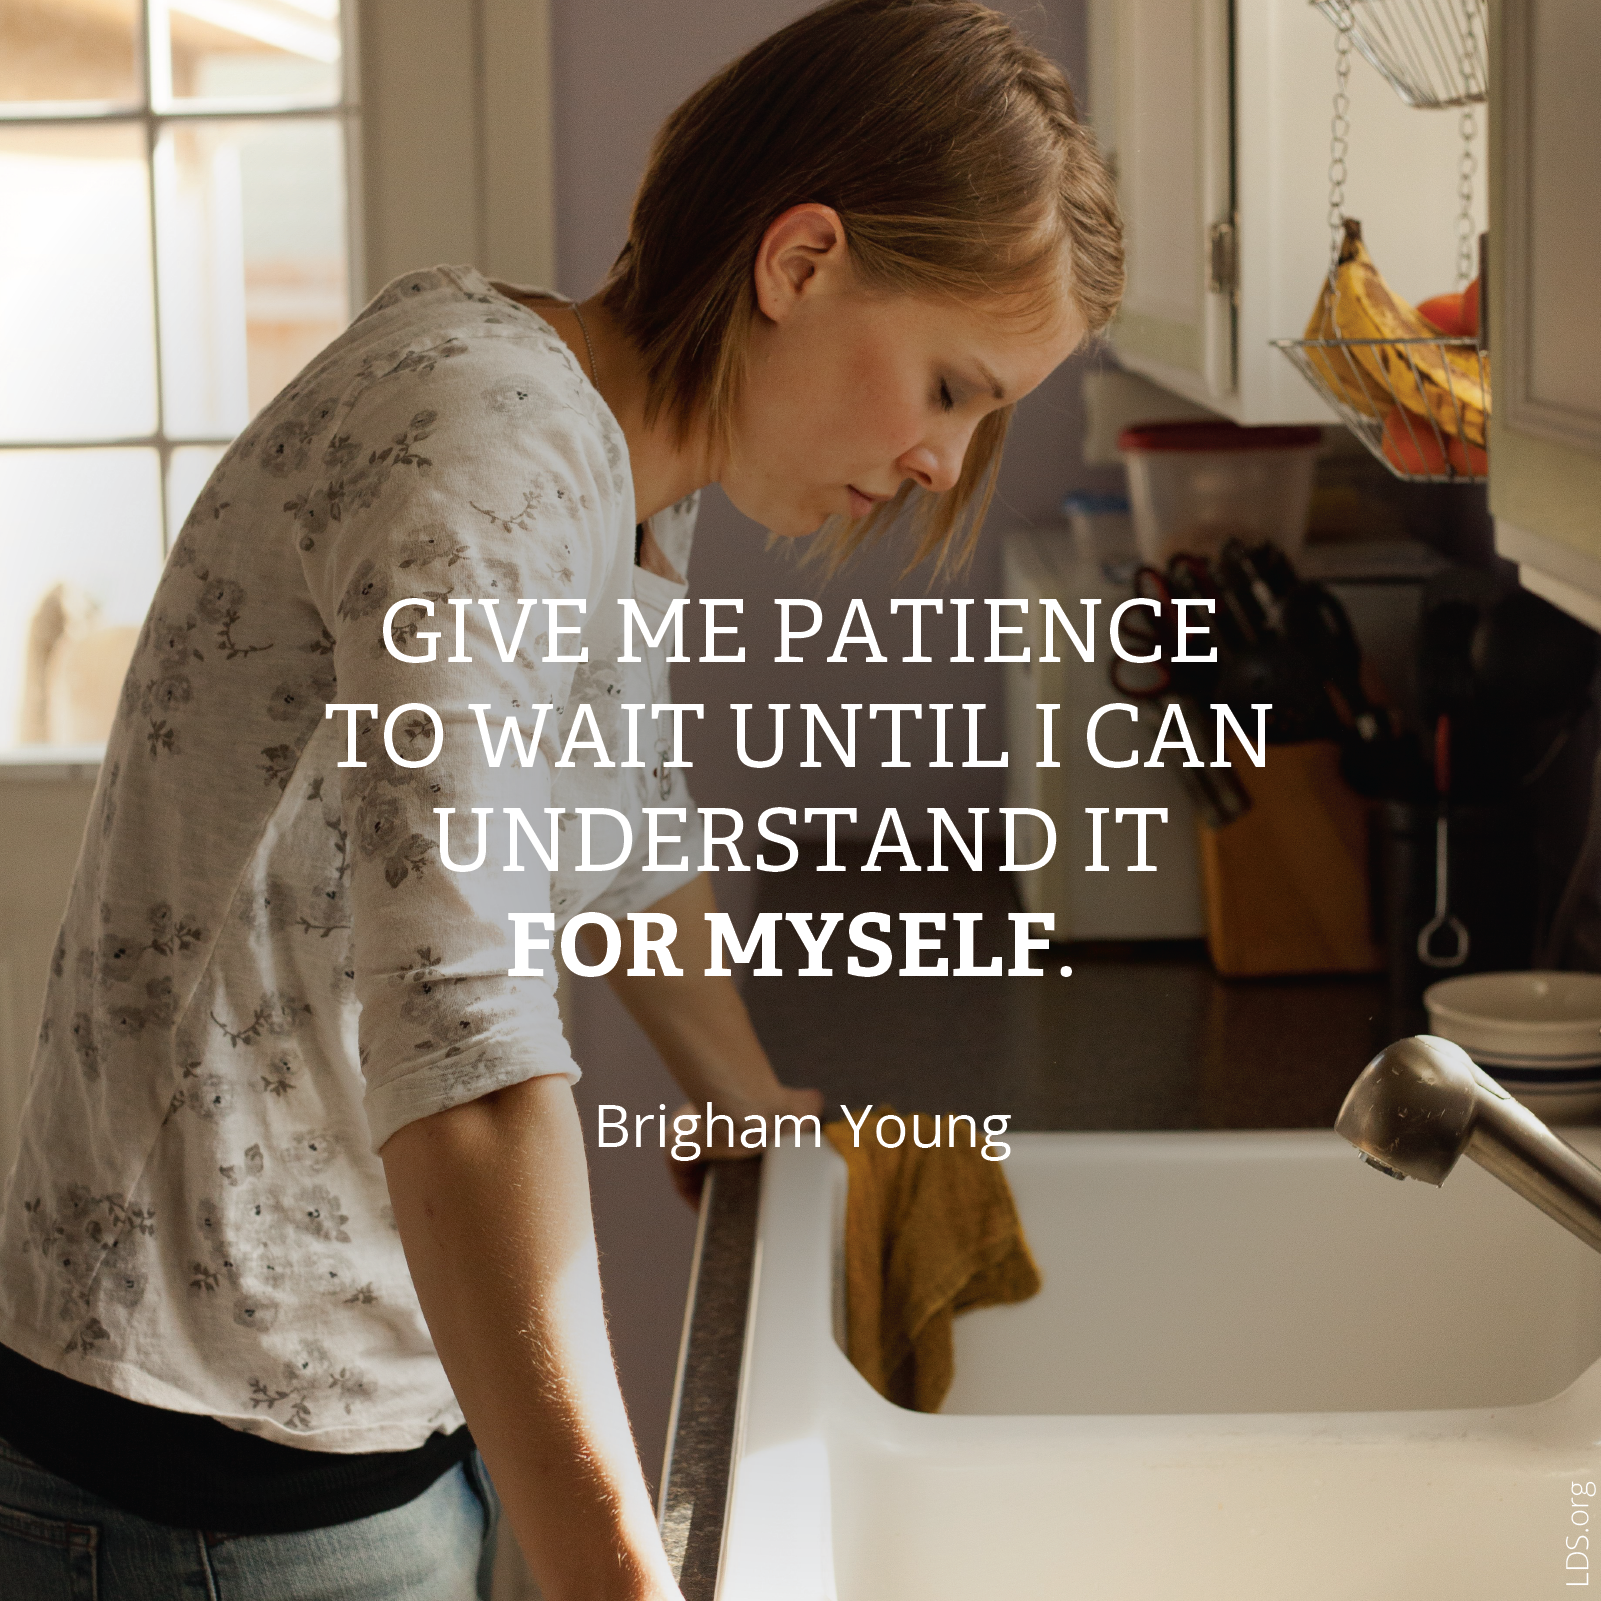 """Meme showing a woman standing at a sink with a quote by Brigham Young that says, """"Give me patience to wait until I can understand it for myself."""" © See Individual Images ipCode 1."""